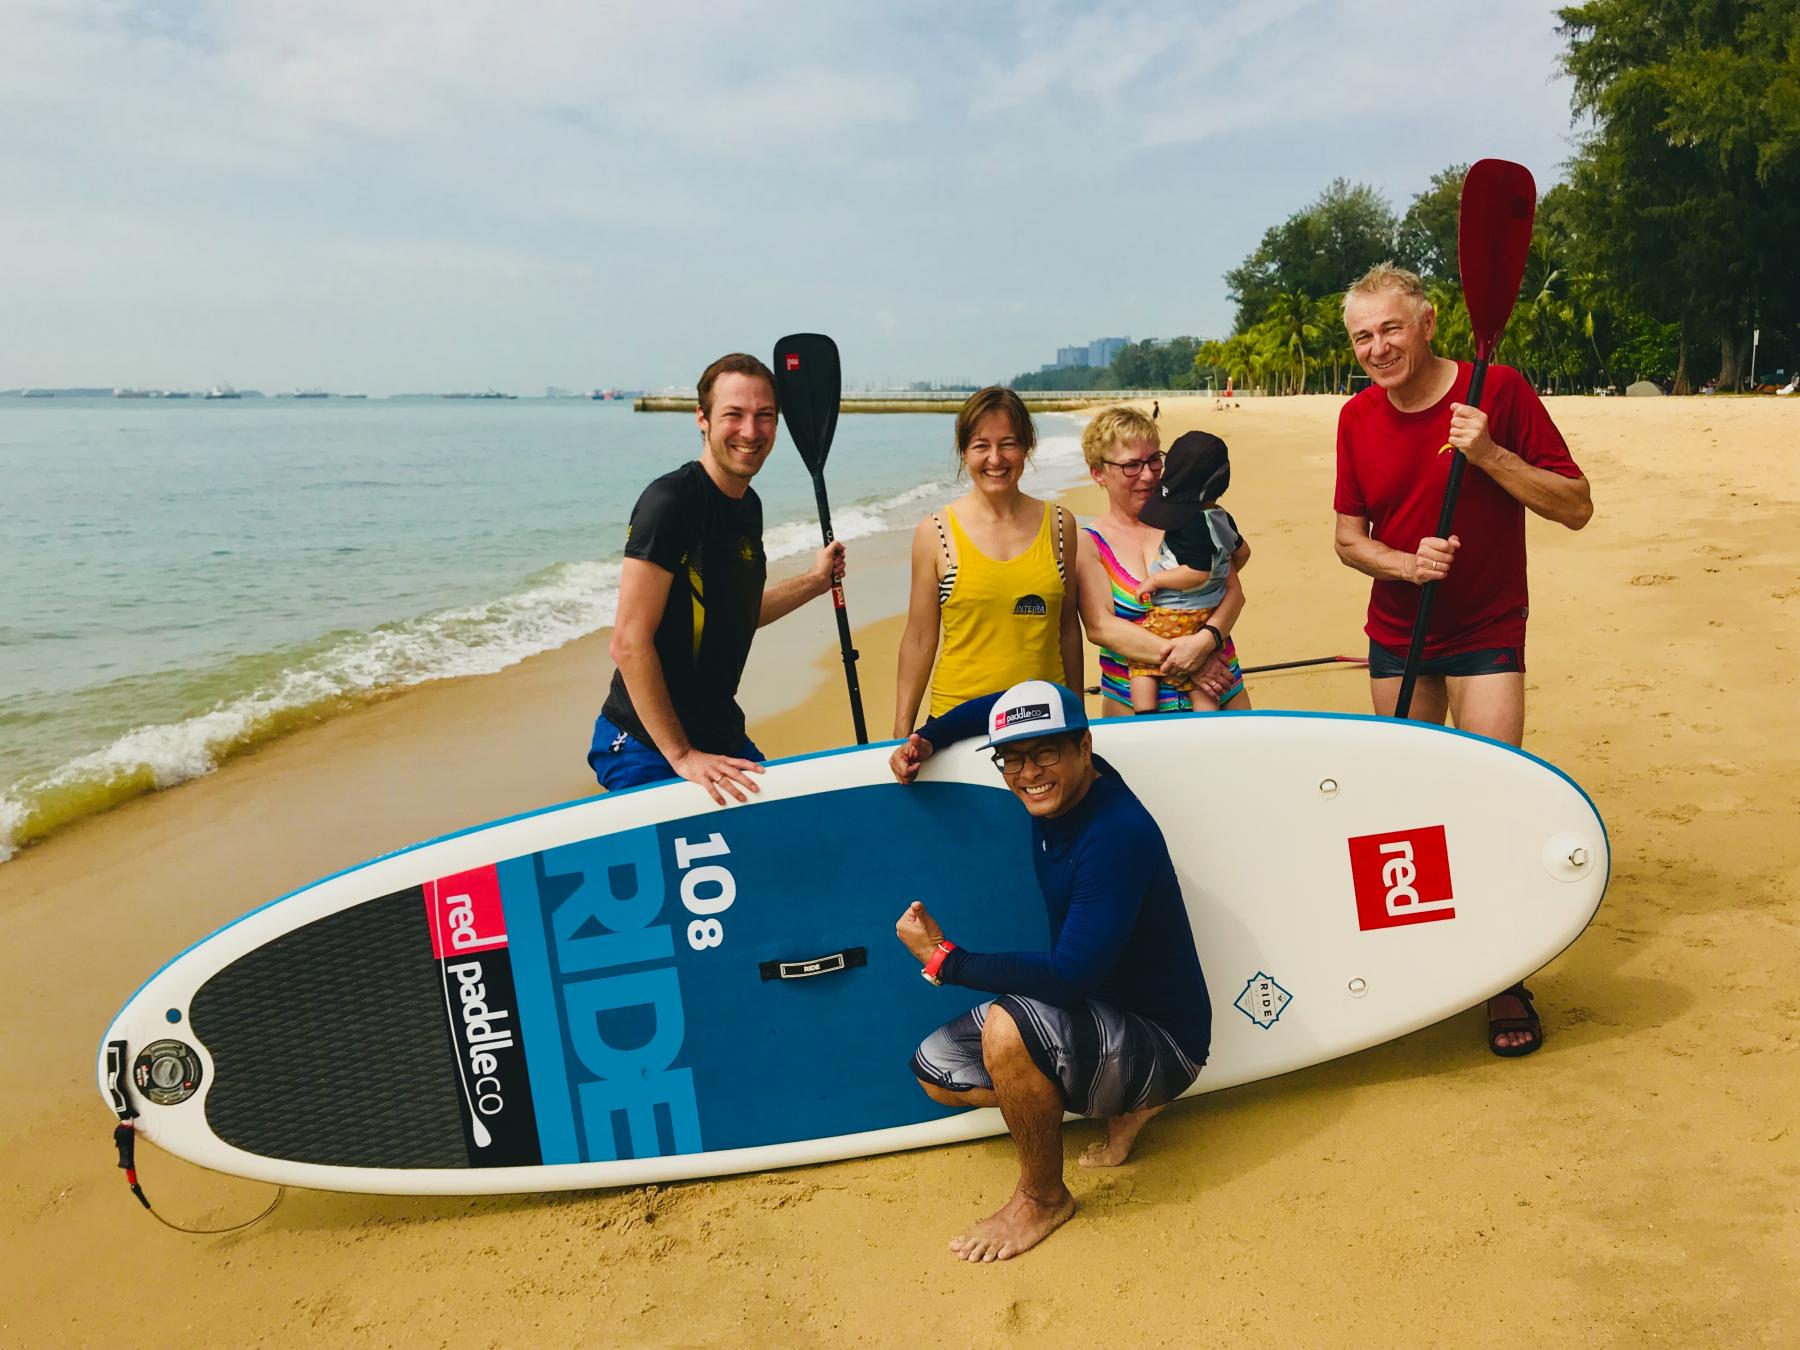 Let's learn paddleboarding at East Coast Park! (September 2018 re-run) starting at 920 East Coast Parkway, Singapore